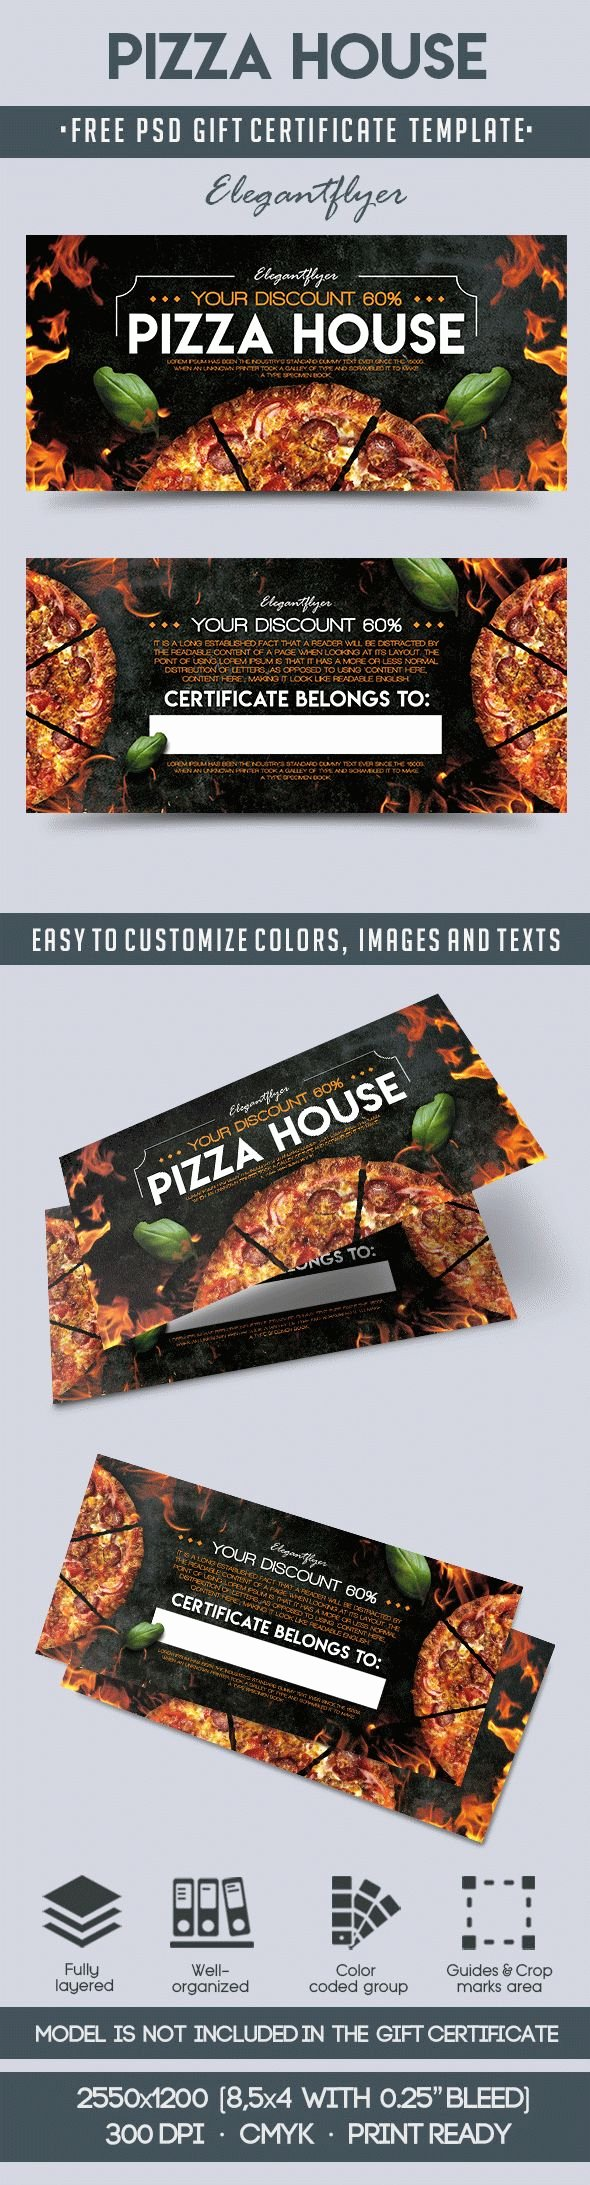 Pizza Gift Certificate Template Unique Pizza House – Free Gift Certificate Psd Template – by